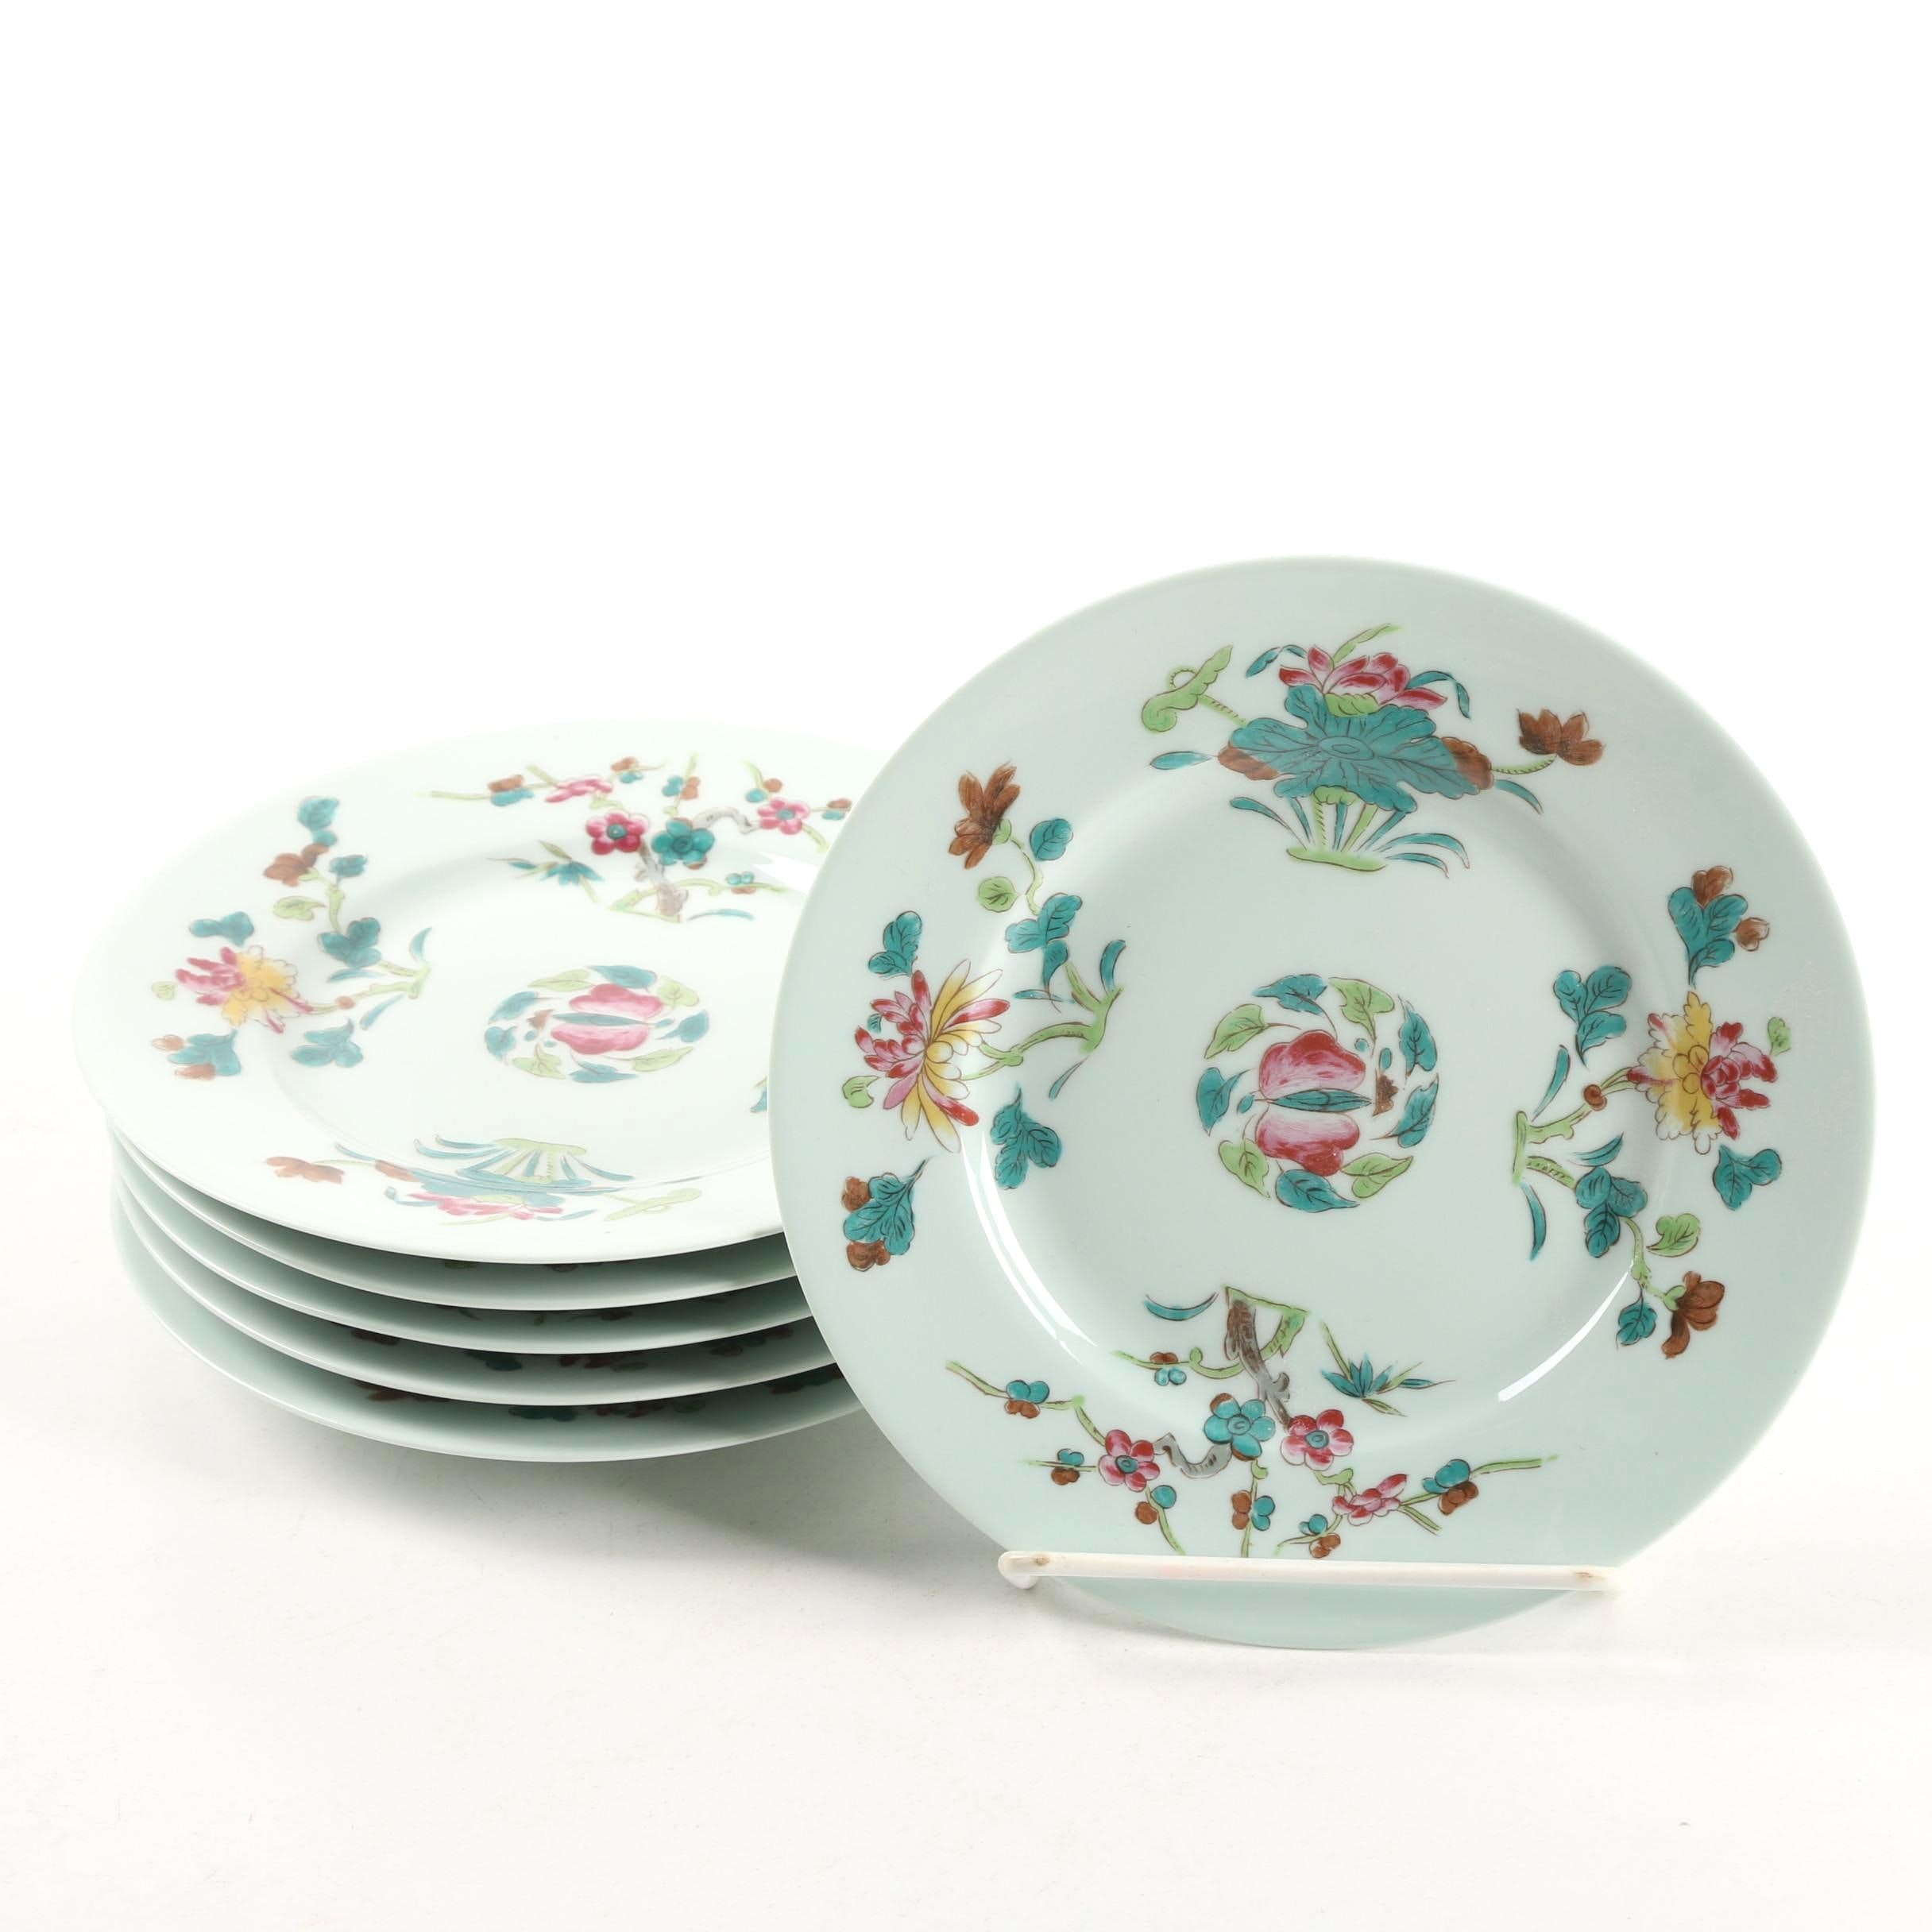 "Céralene Limoges ""Nymphea"" Porcelain Bread and Butter Plates"